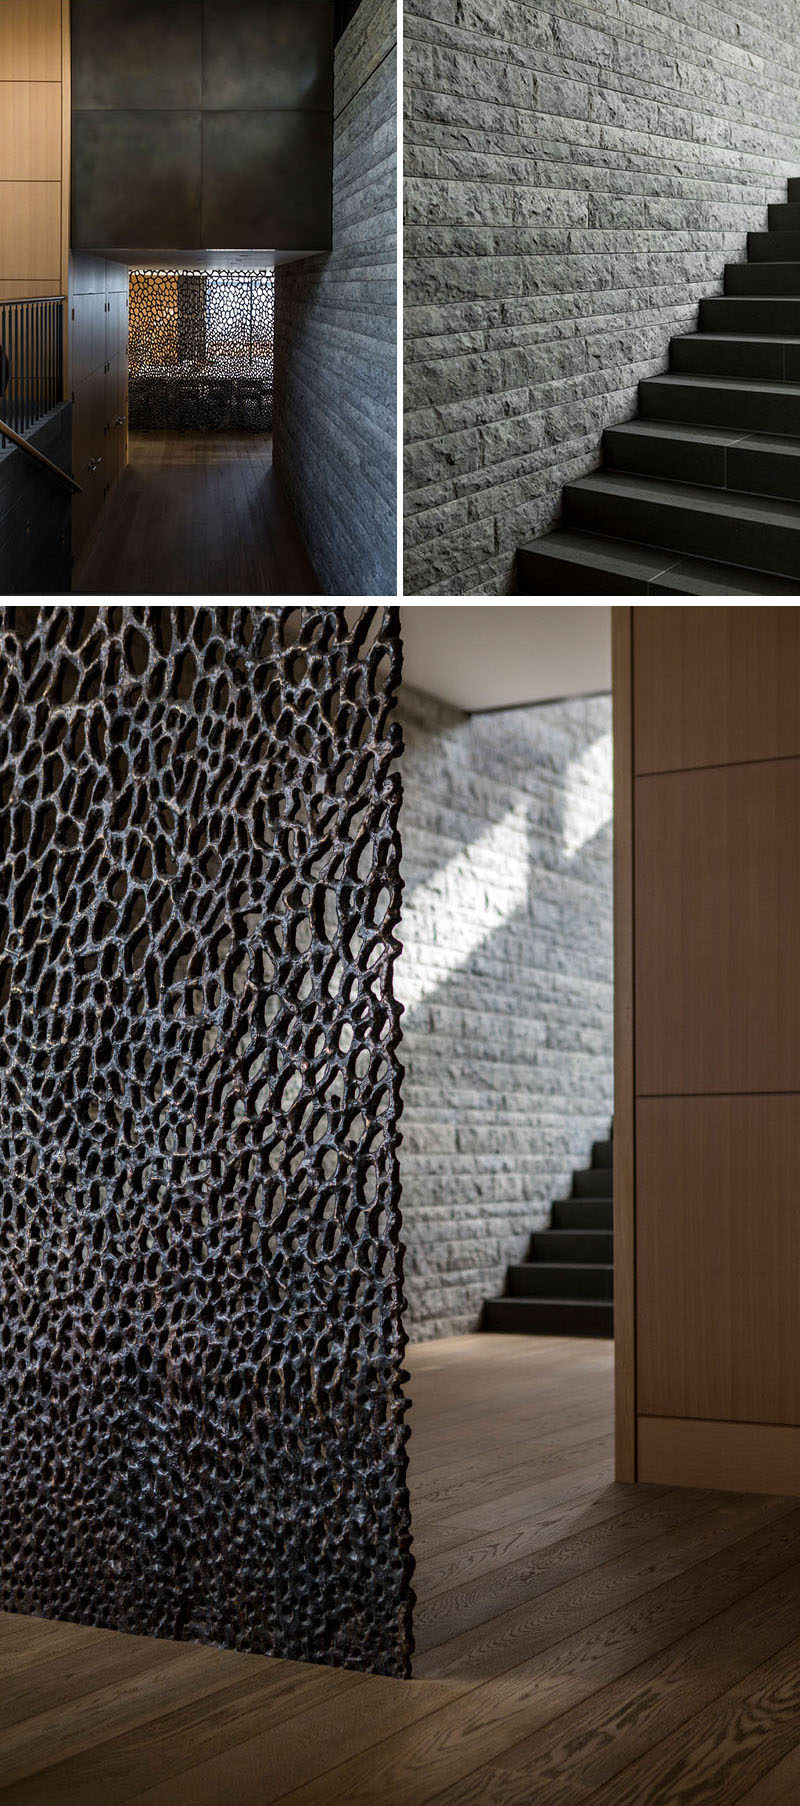 In this modern house, a stone wall runs alongside the stairs, while at the bottom of the stairs, there's a decorative screen hiding the dining room.